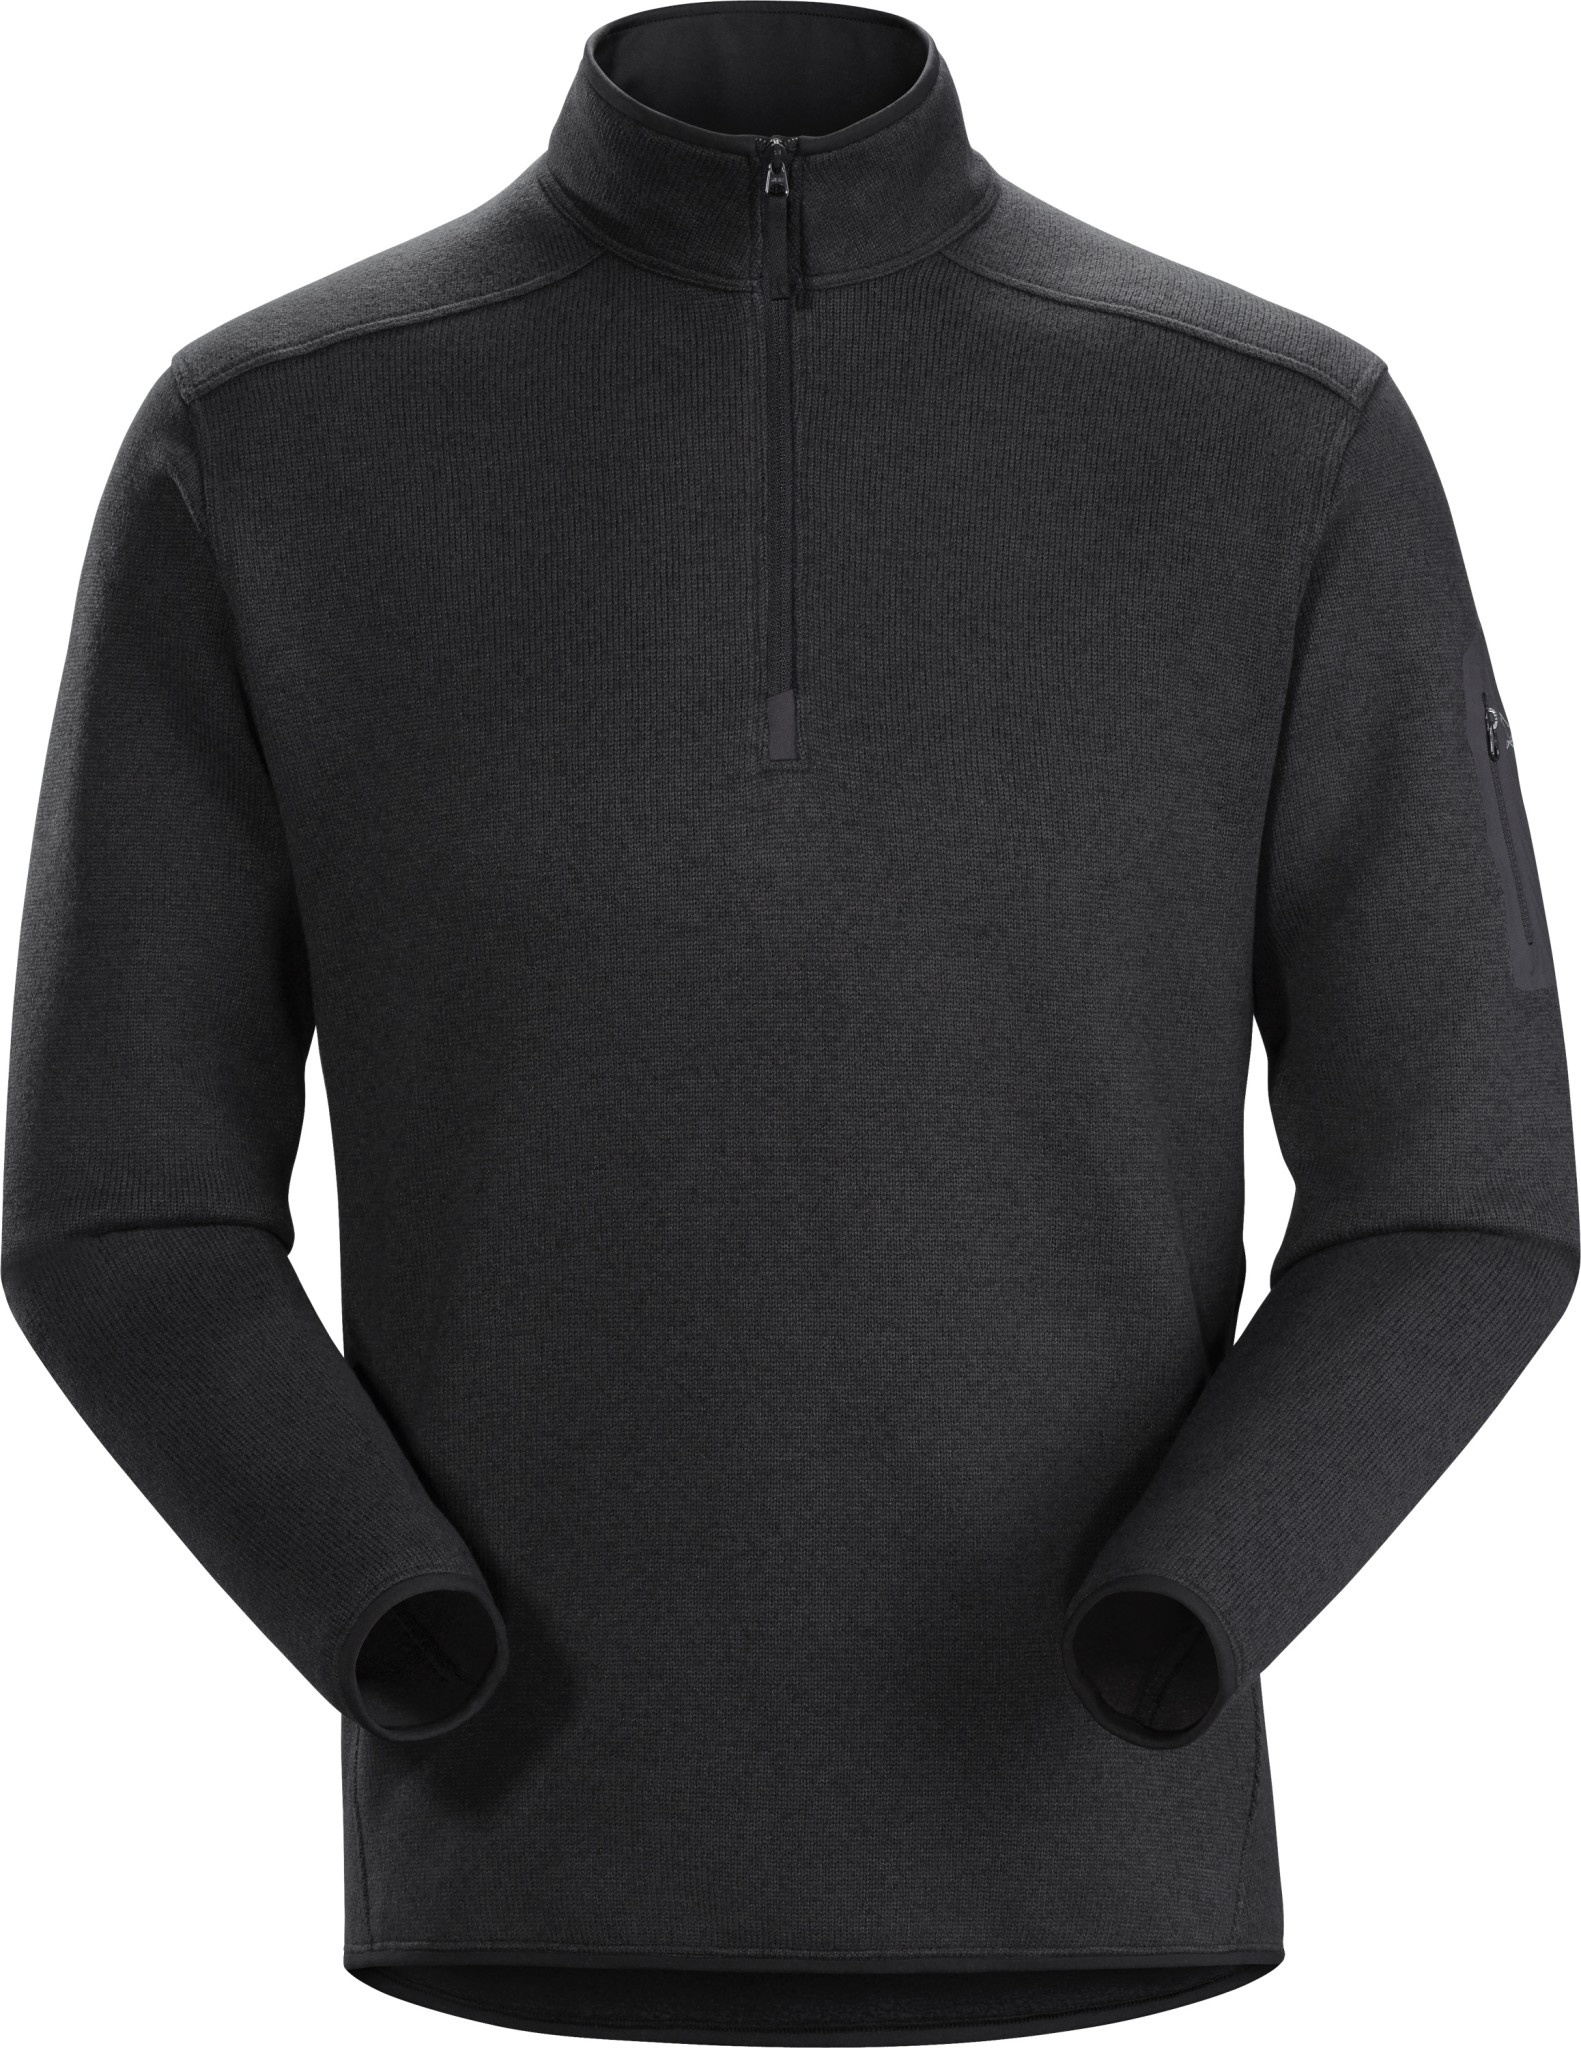 Arc'teryx Covert 1/2 Zip Men's-1